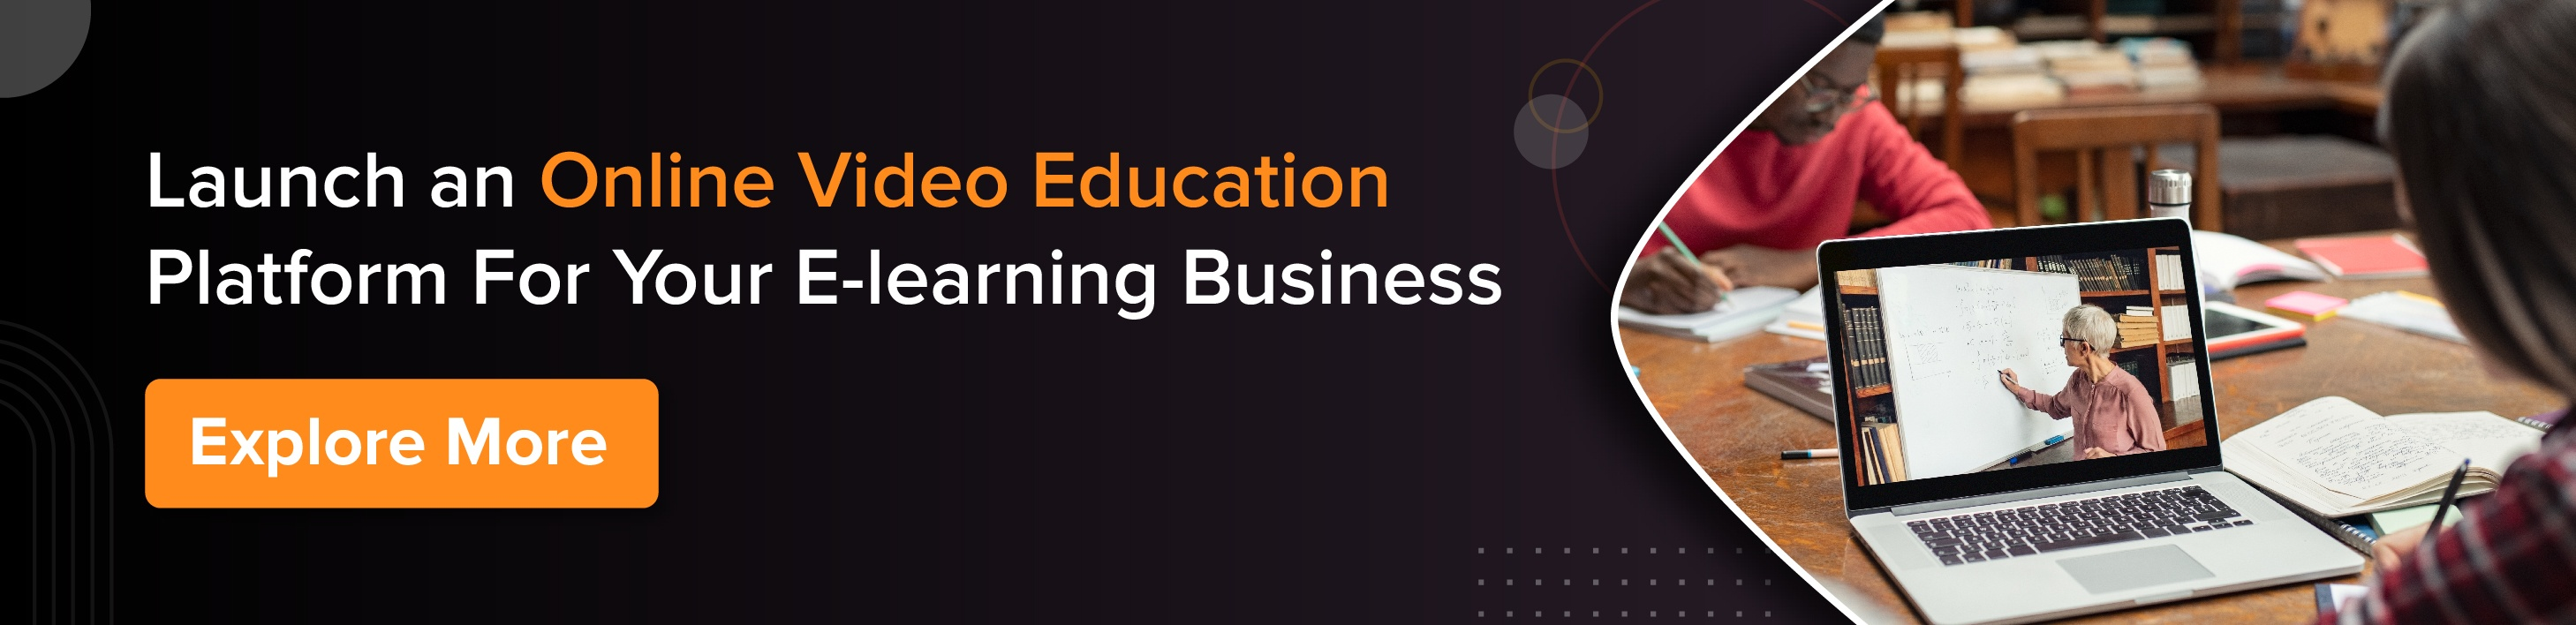 Online Video education platform